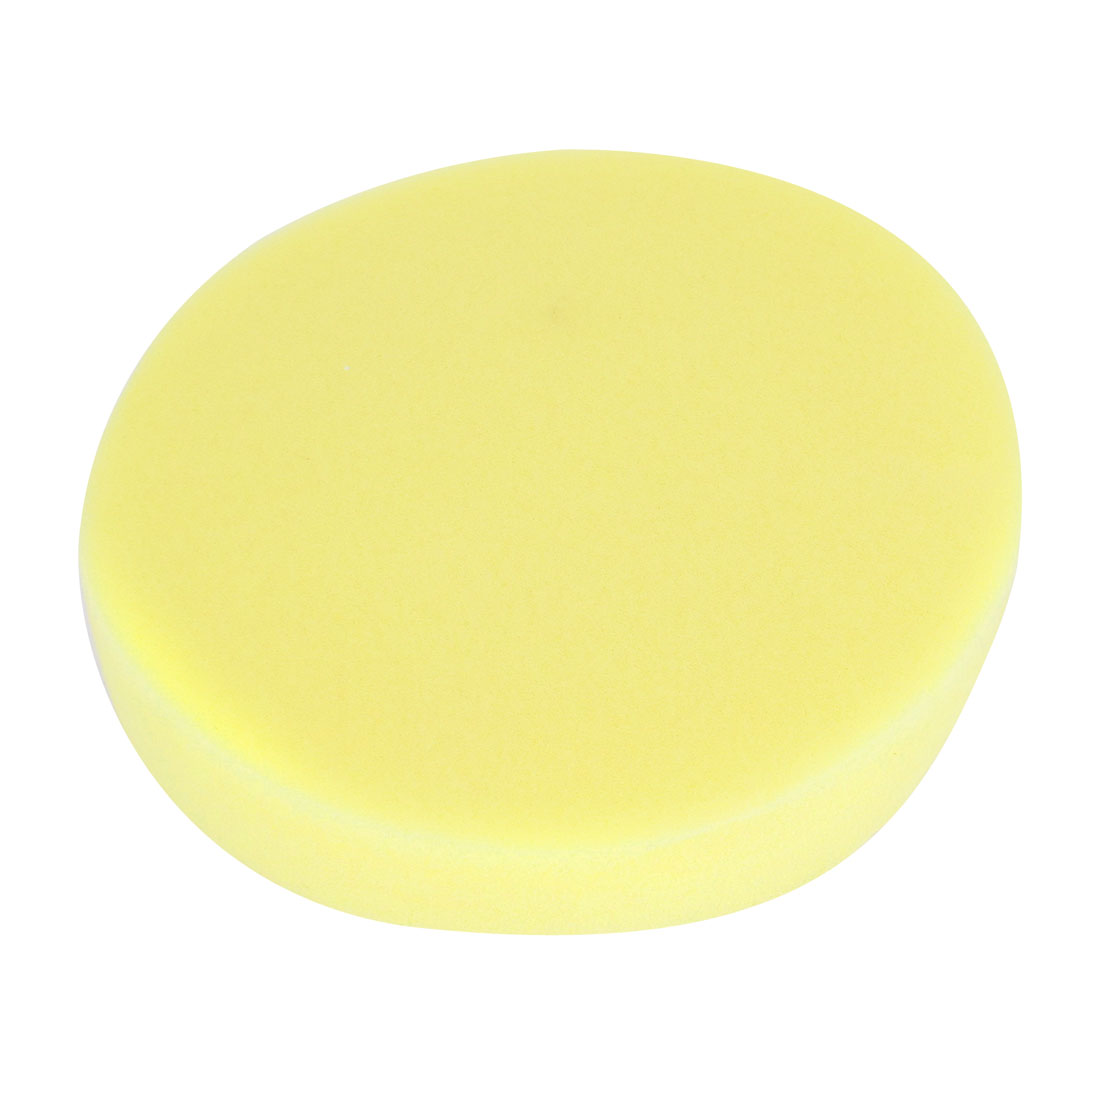 "6"" Dia Yellow Round Wash Cleaning Polishing Sponge Pad for Auto Car"